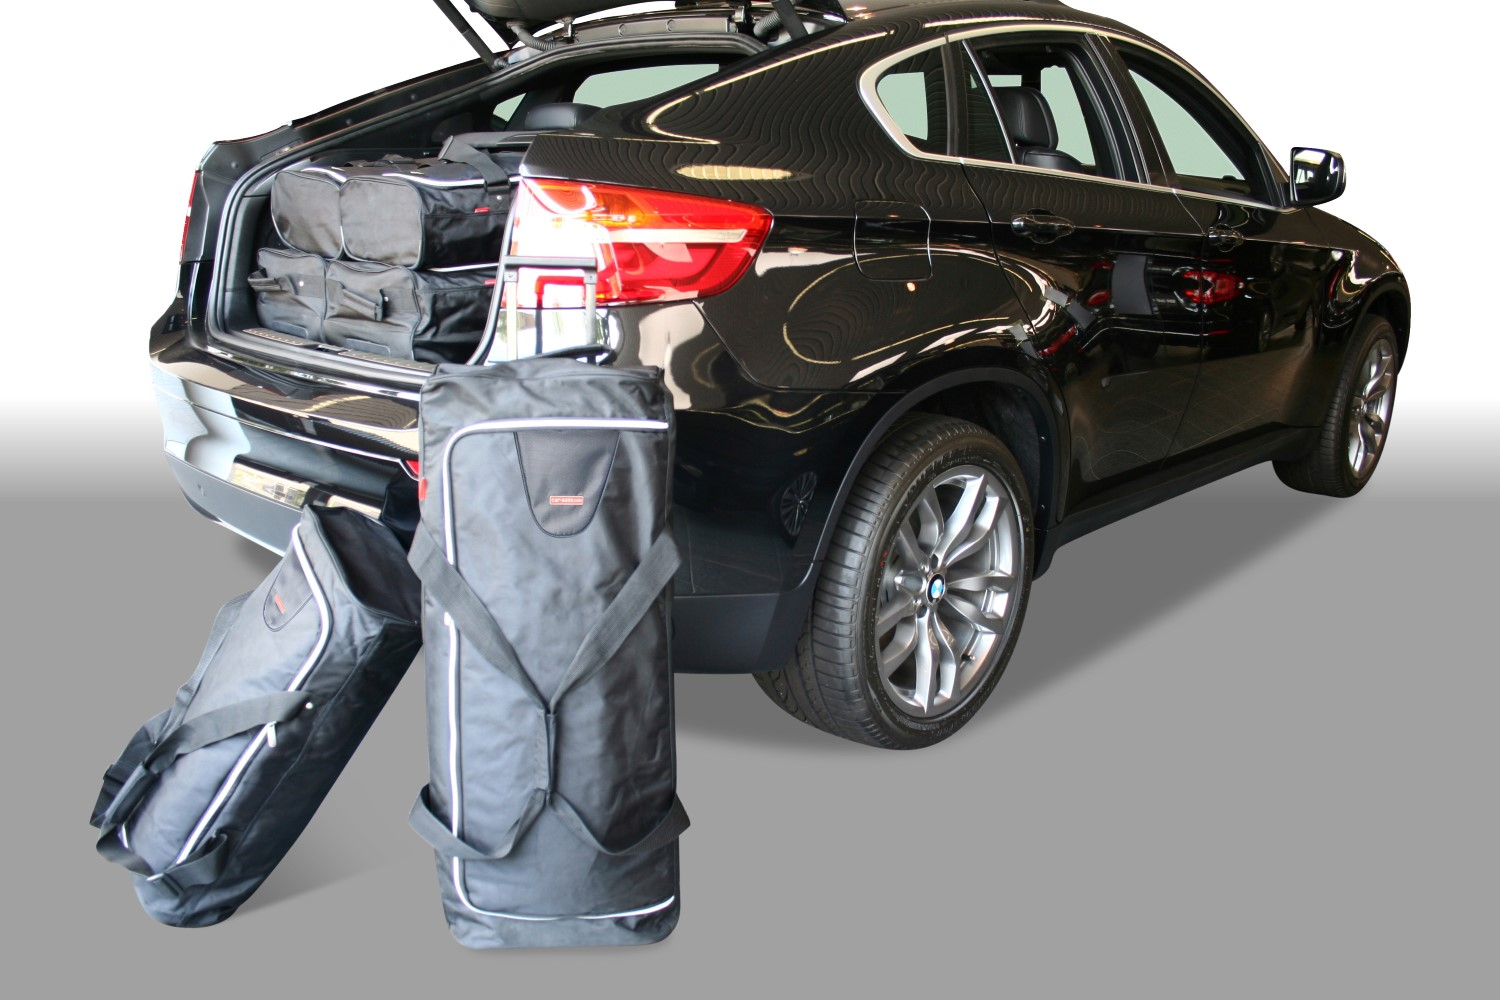 BMW X6 (E71) 2008-2014 Car-Bags.com travel bag set (1)